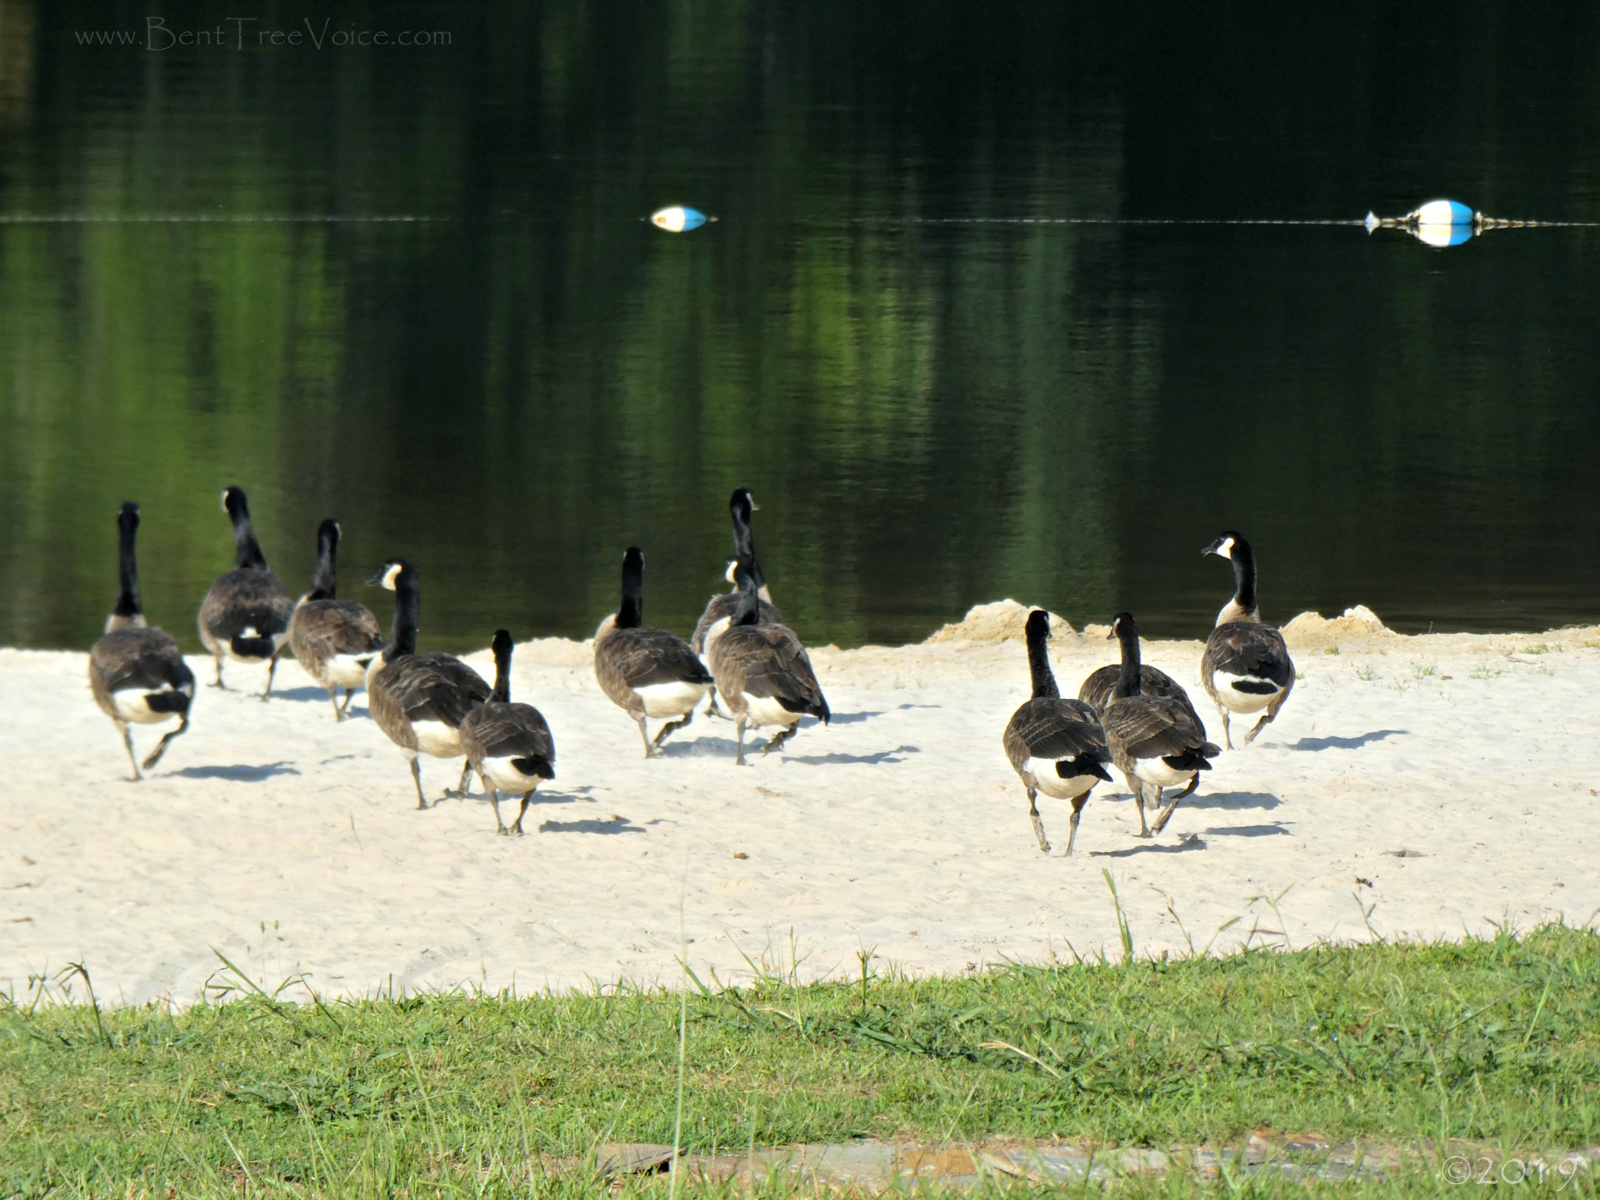 July 7, 2019 - Canada Geese on the Bent Tree beach